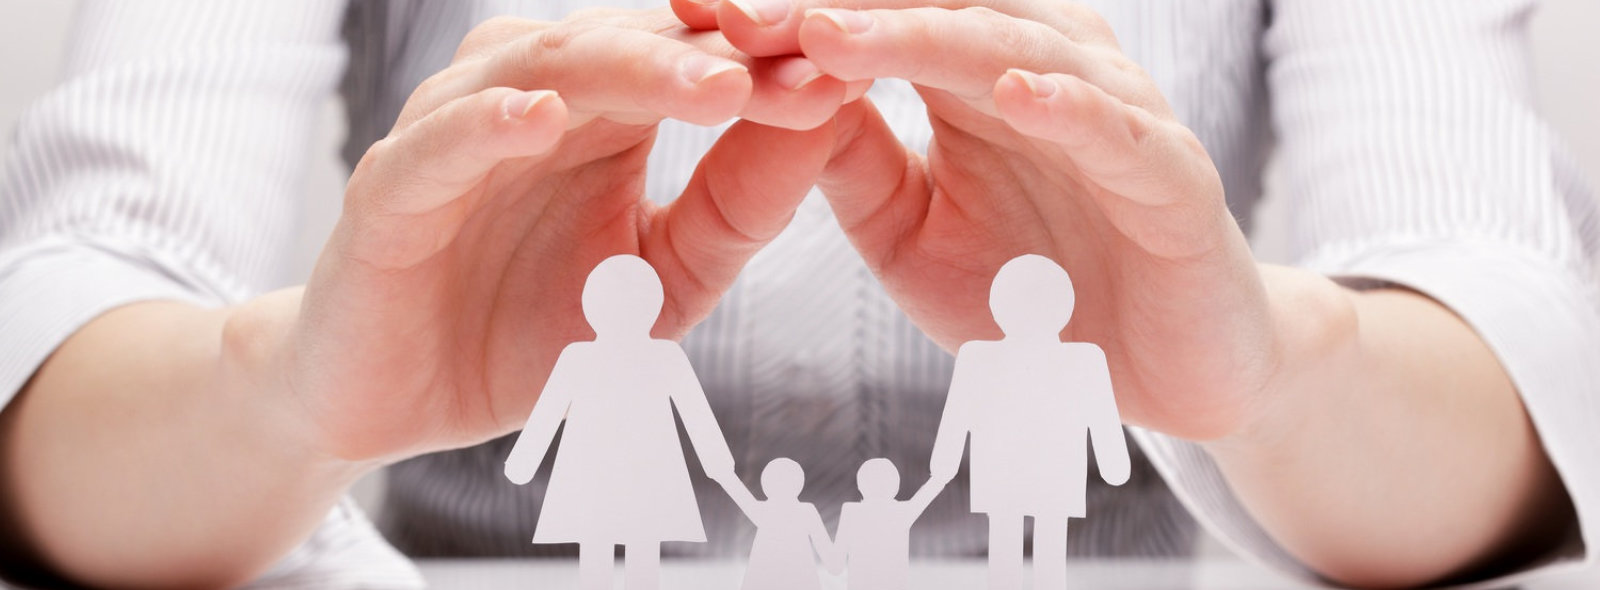 family of law Family law (also called matrimonial law or the law of domestic relations) is an area of the law that deals with family matters and domestic relations.